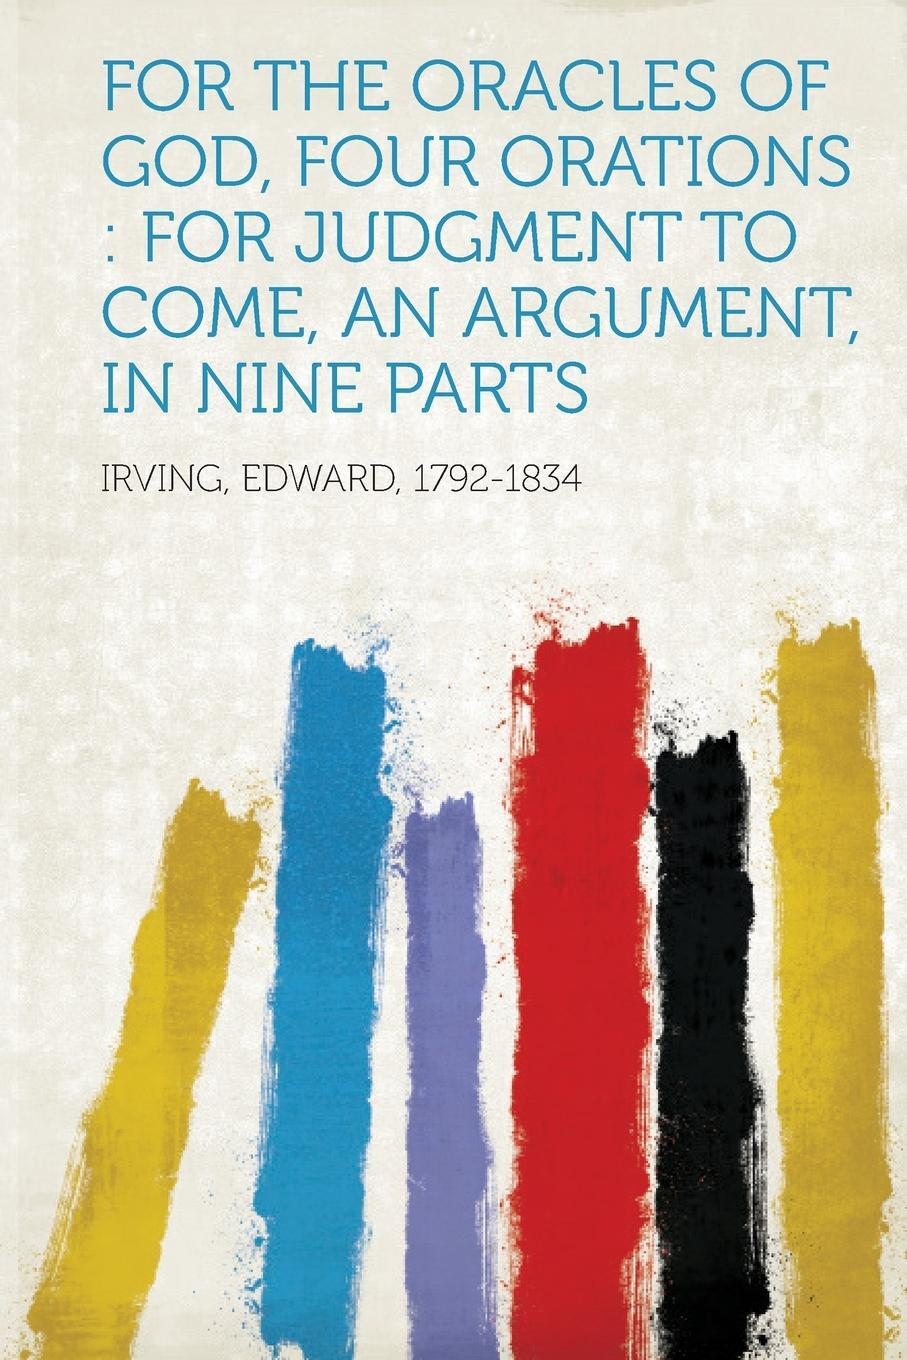 For the Oracles of God, Four Orations. For Judgment to Come, an Argument, in Nine Parts